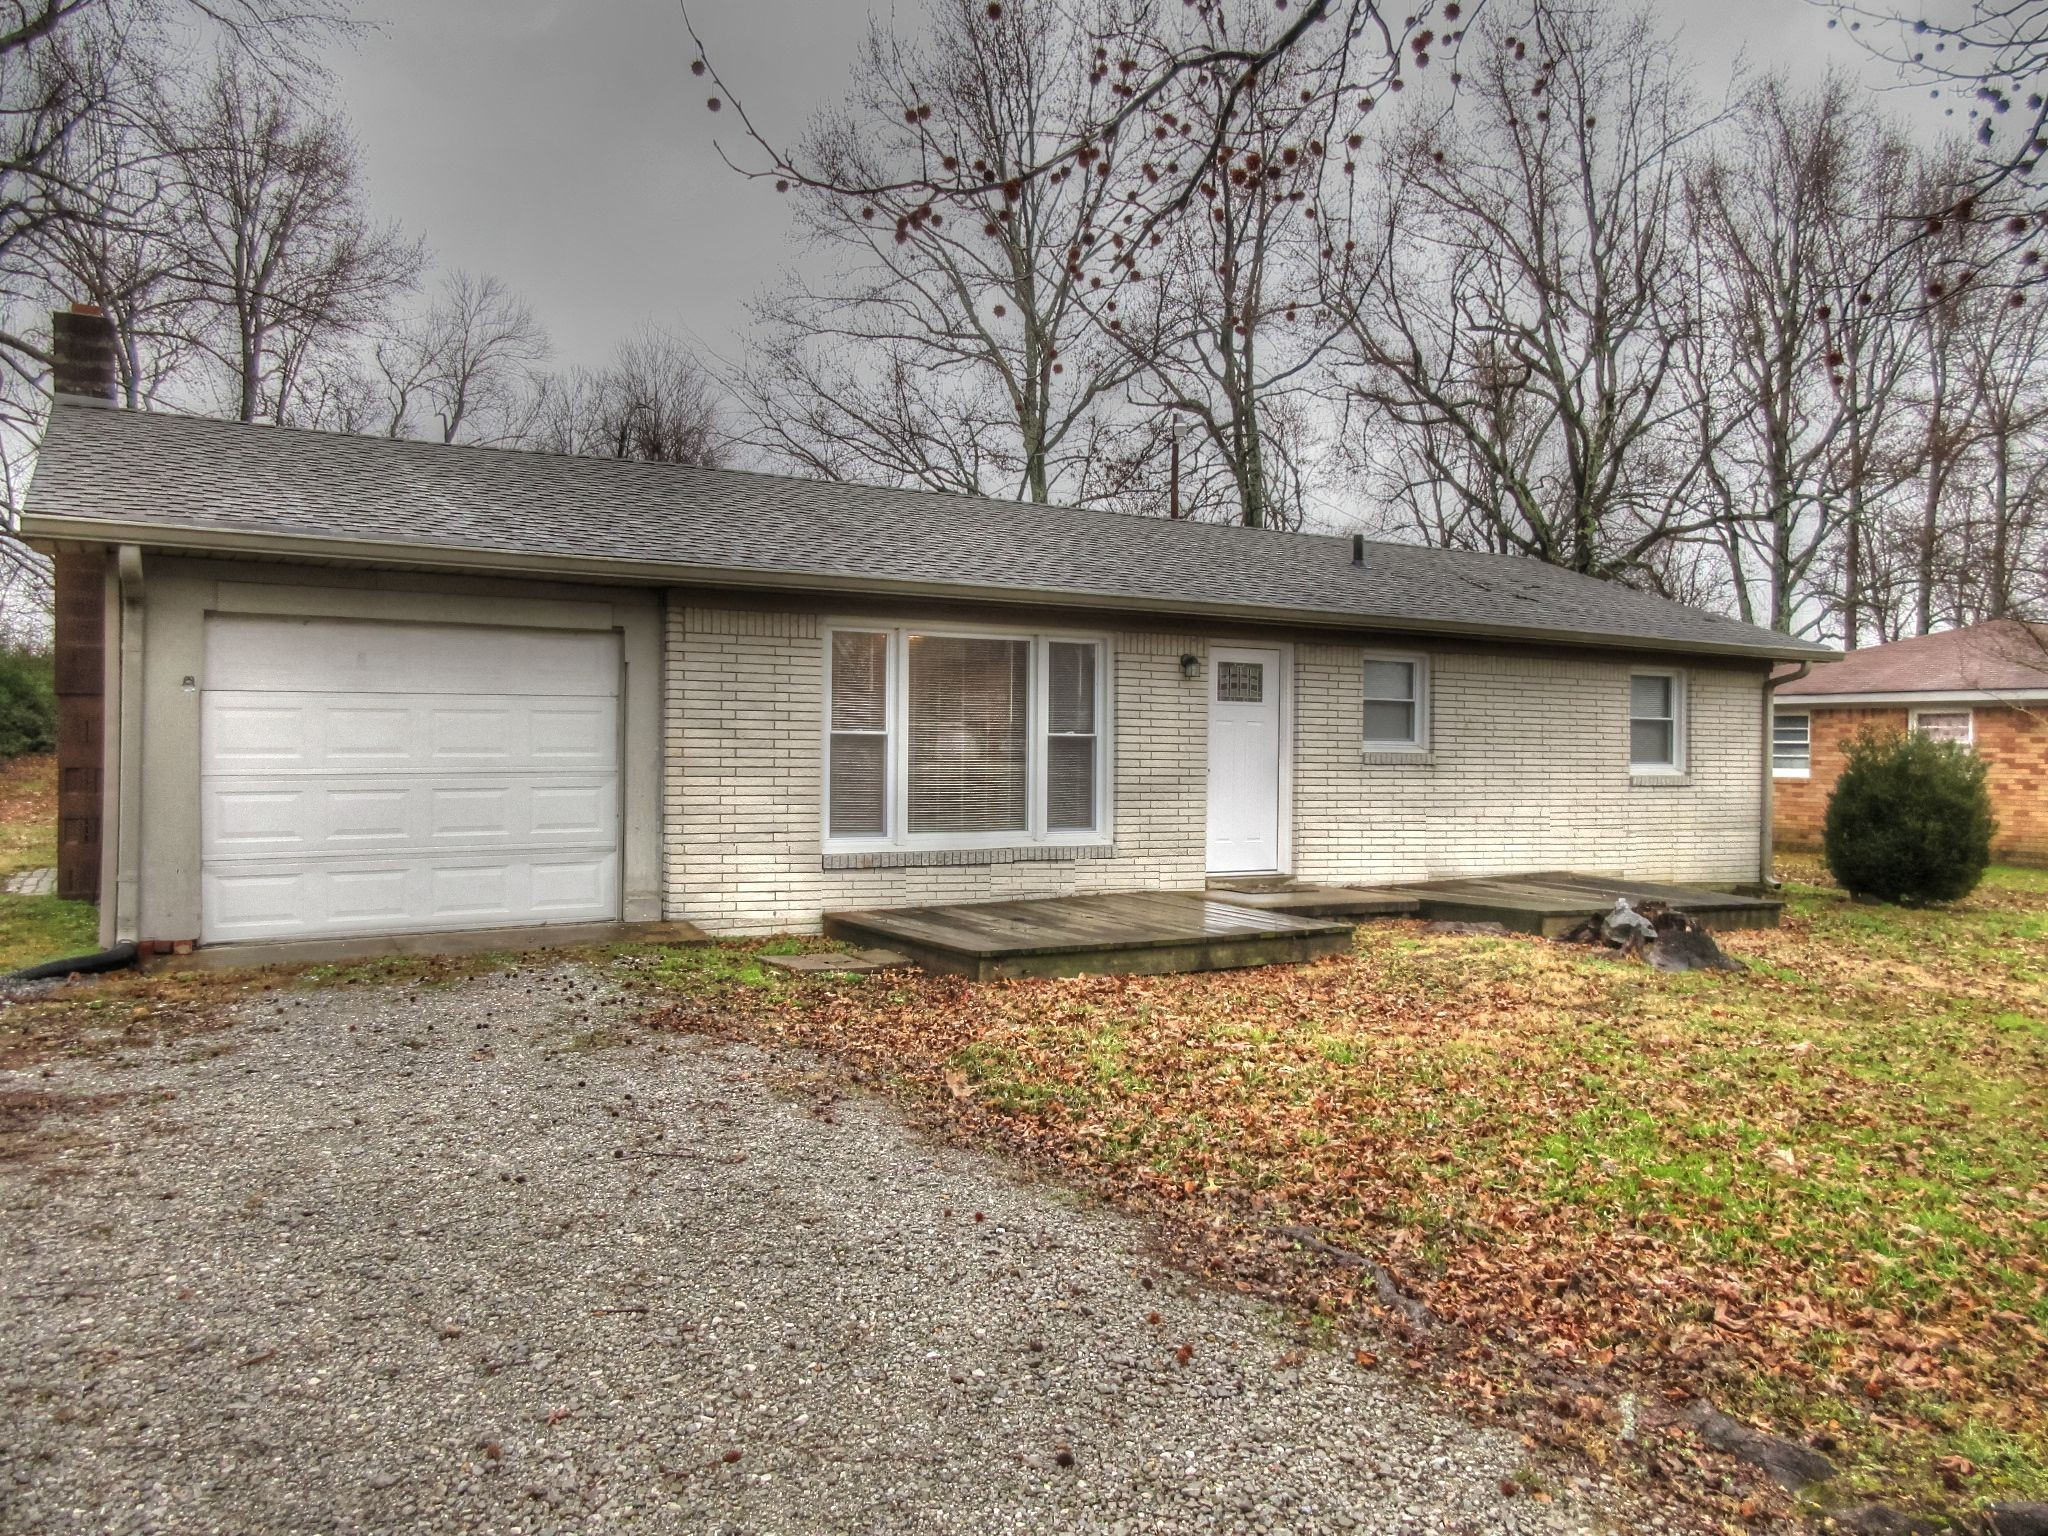 8842 Us Highway 70 E, MC EWEN, TN 37101 - MC EWEN, TN real estate listing